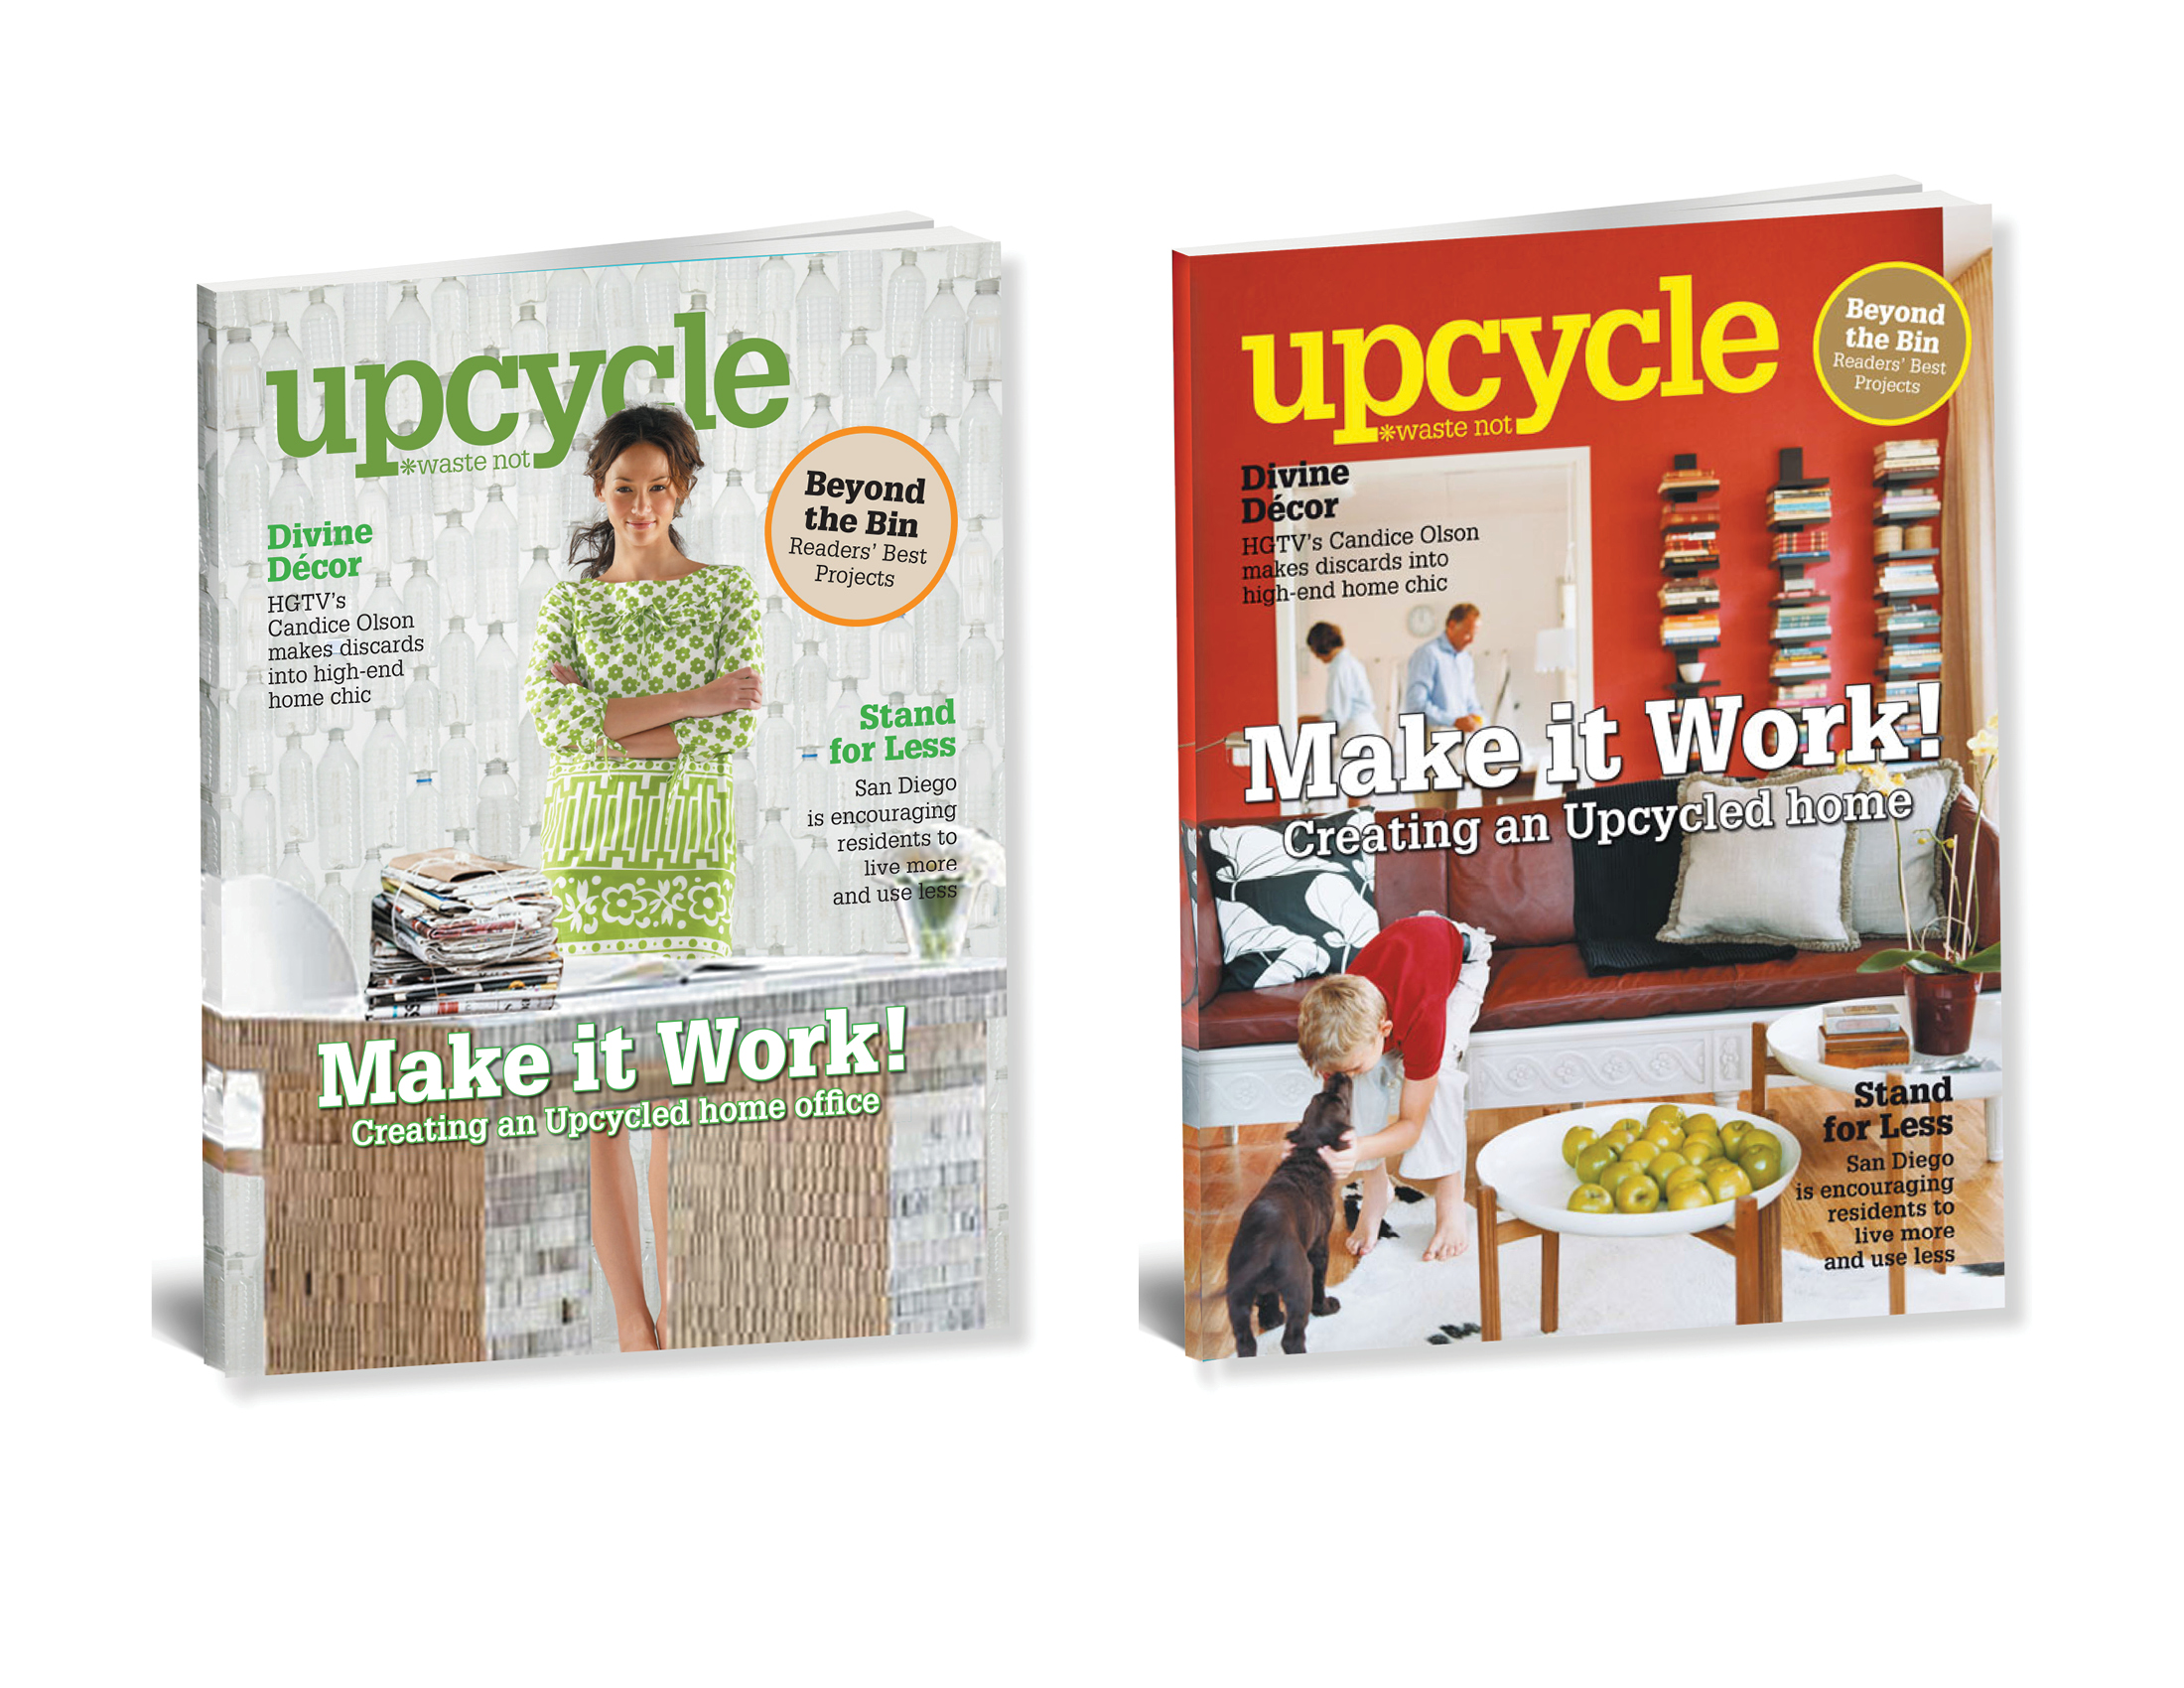 Upcycle magazine cover designs